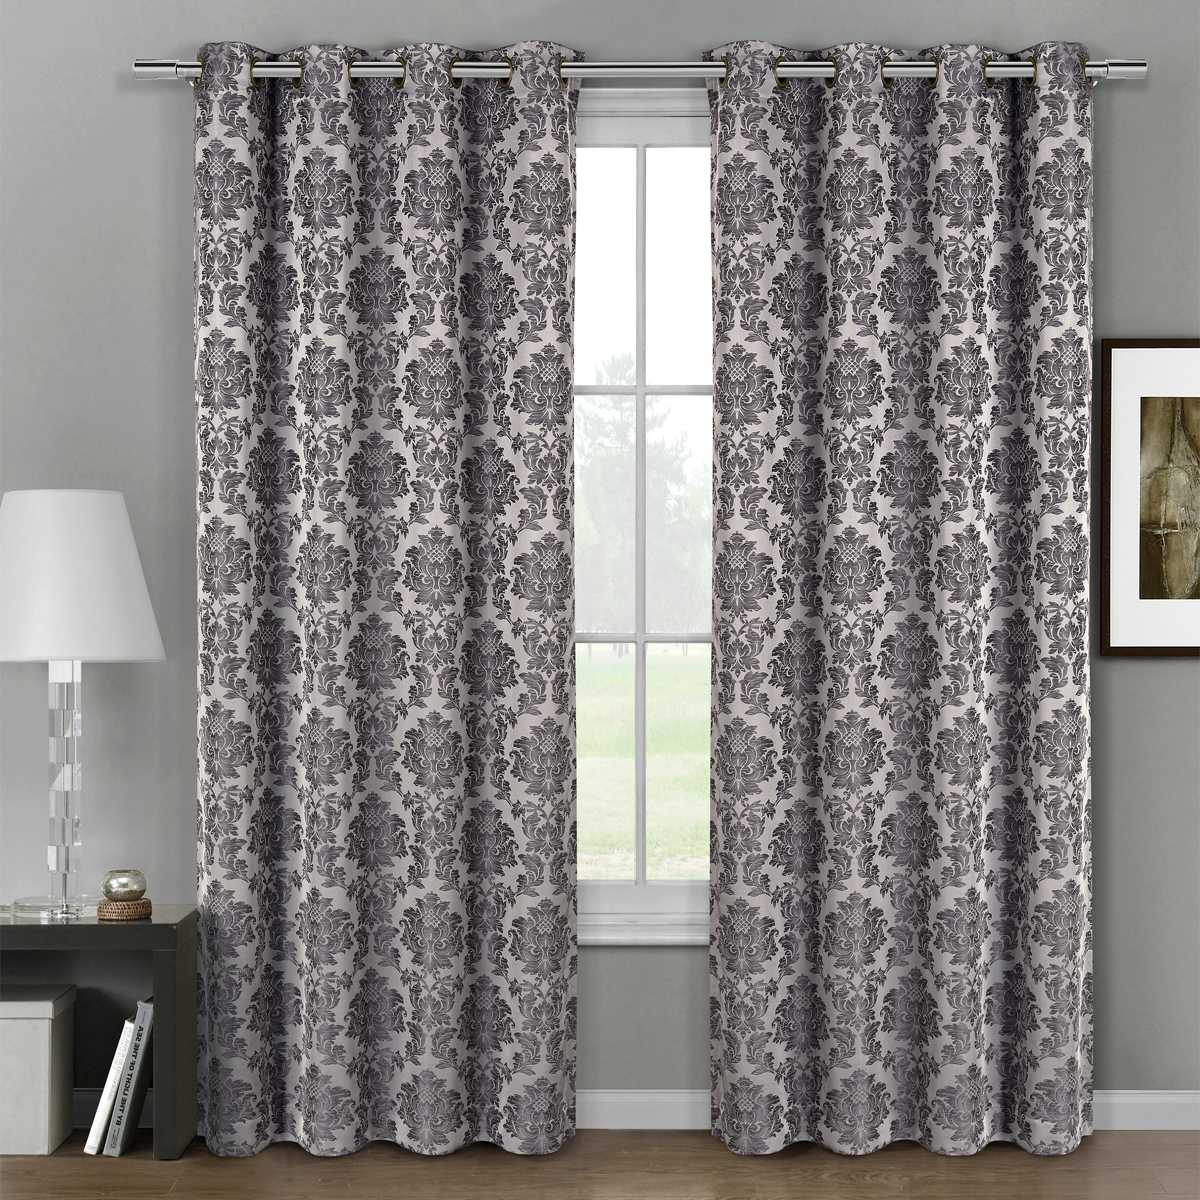 Jacquard Curtains Pair Set Of 2 Aryanna Damask Floral Curtains Jacquard Grommet Panels 108x108 Gray